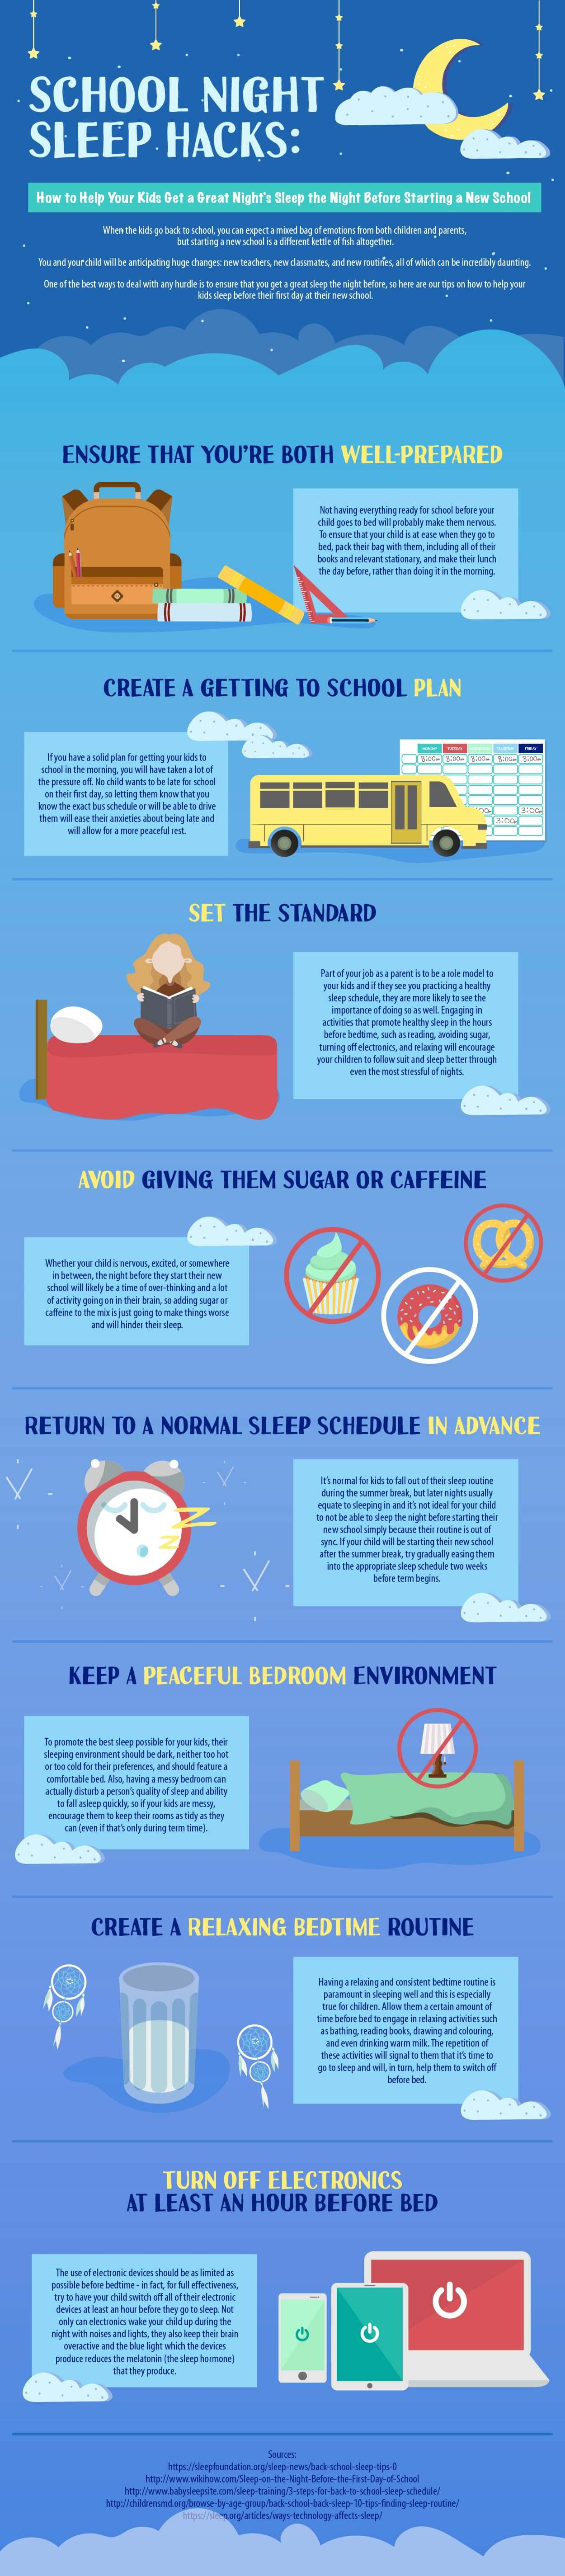 Sleep Hacks for the Night Before School Begins - Infographic